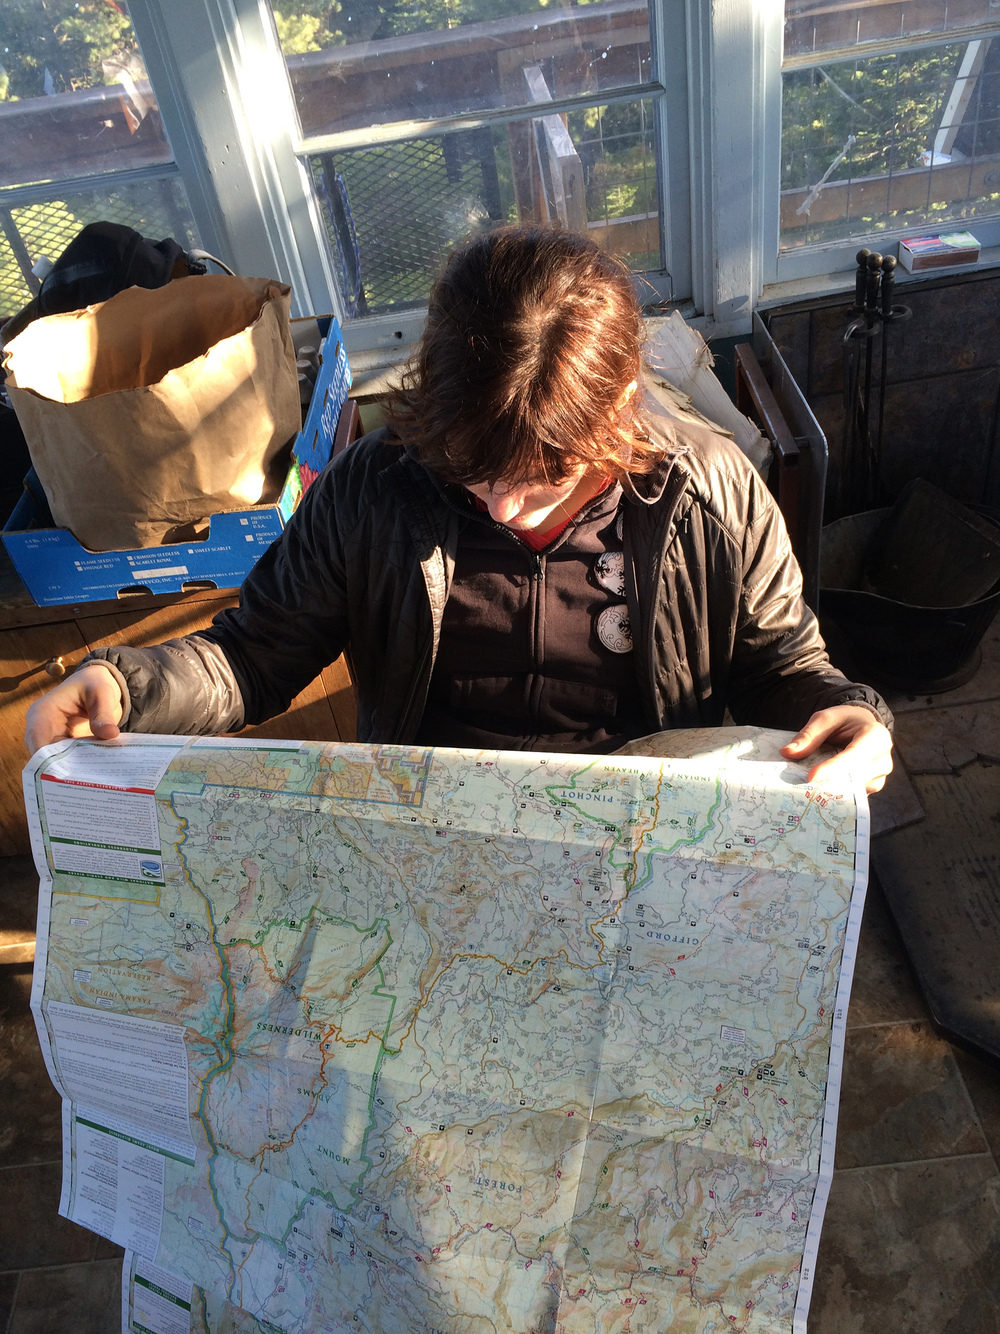 I spent a lot of time staring at maps. Photo by Krissy.